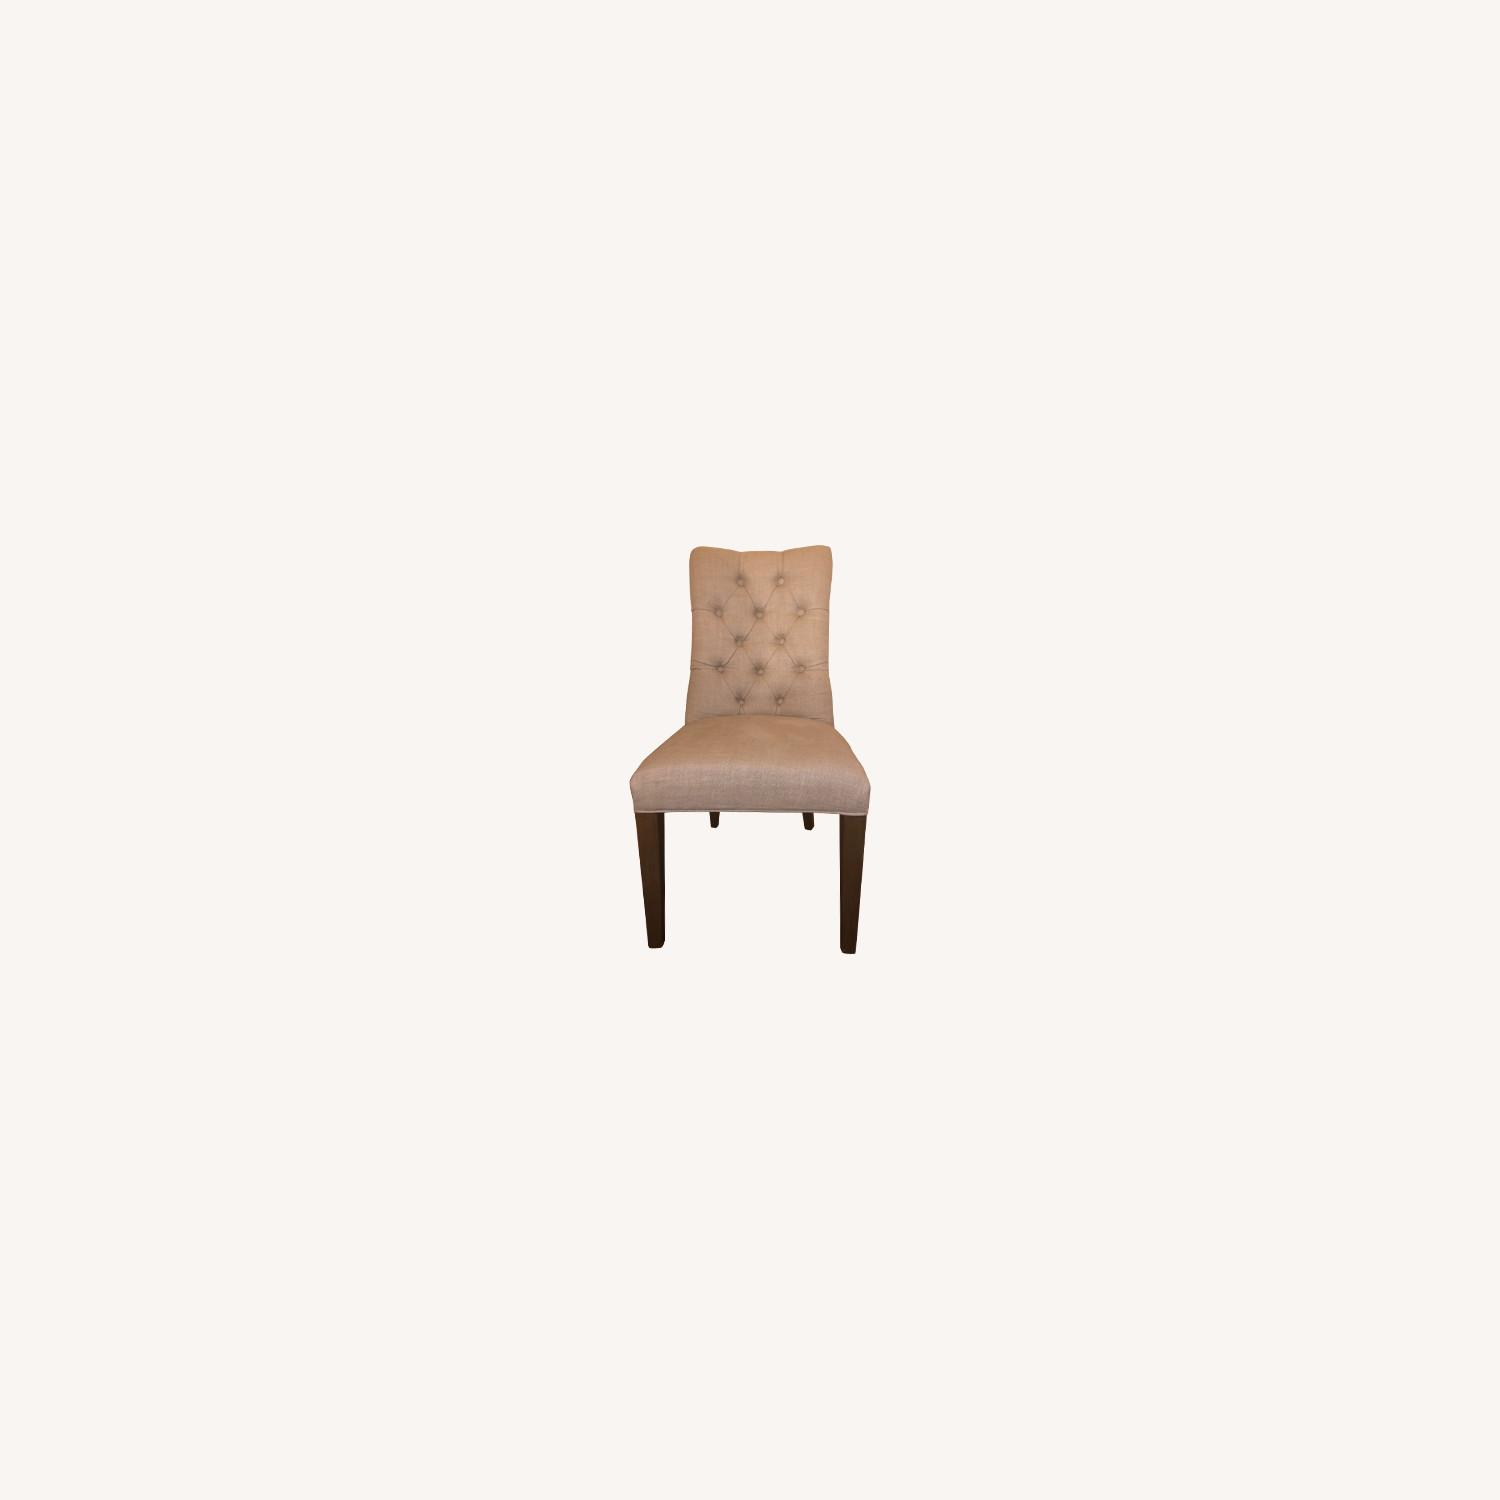 Restoration Hardware Martine Side Chair - image-0